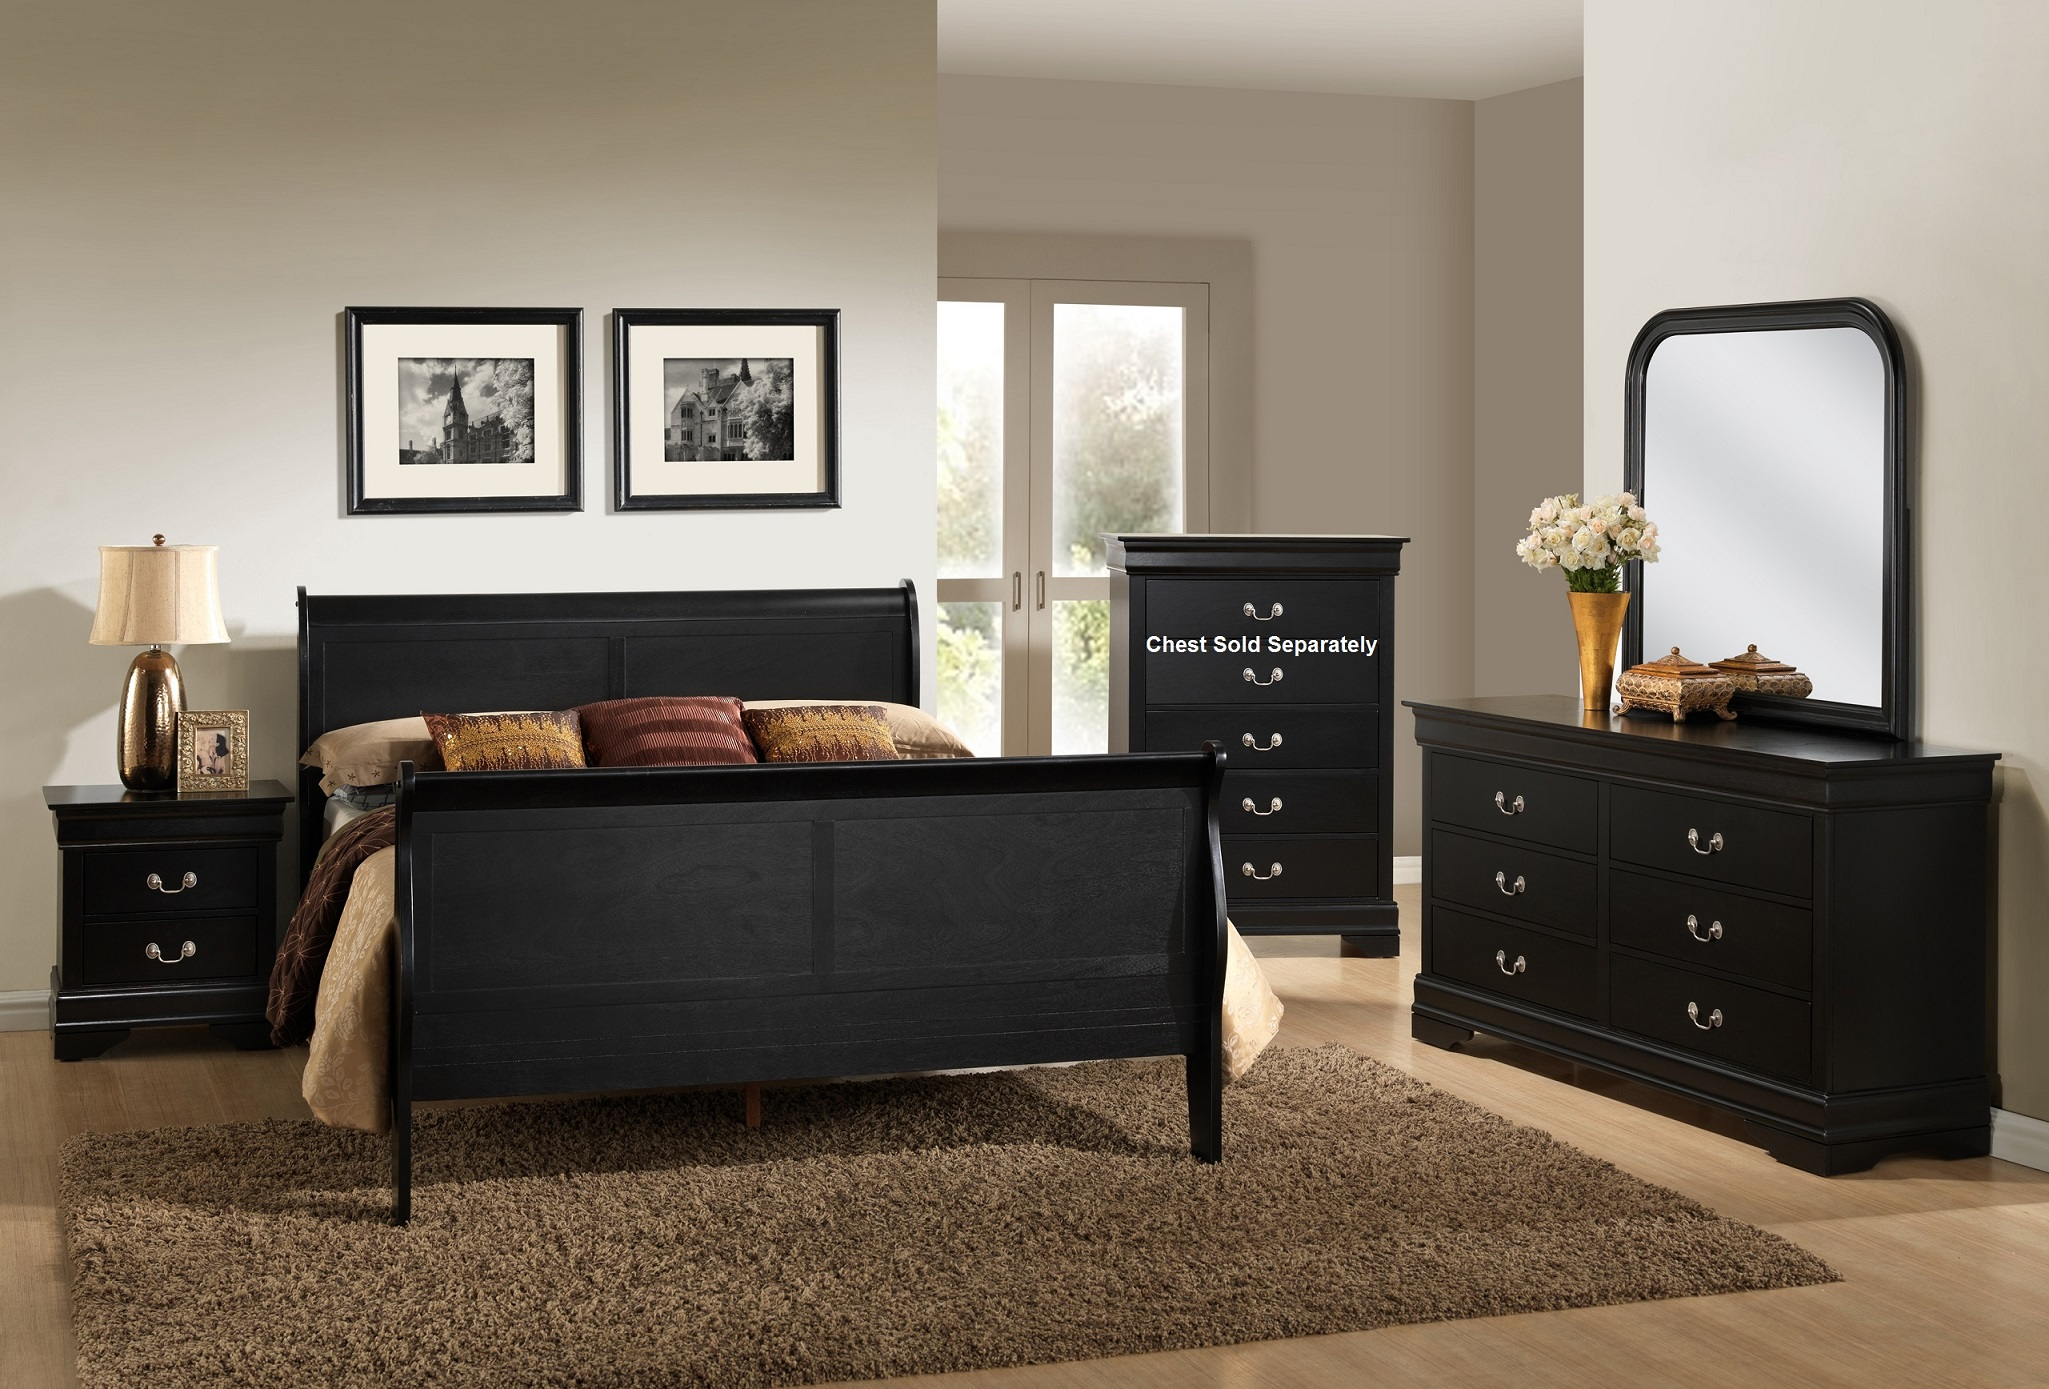 Furnituremaxx Isony 594 Black Louis Philippe Style Wood Bedroom Furniture Set Queen Bed